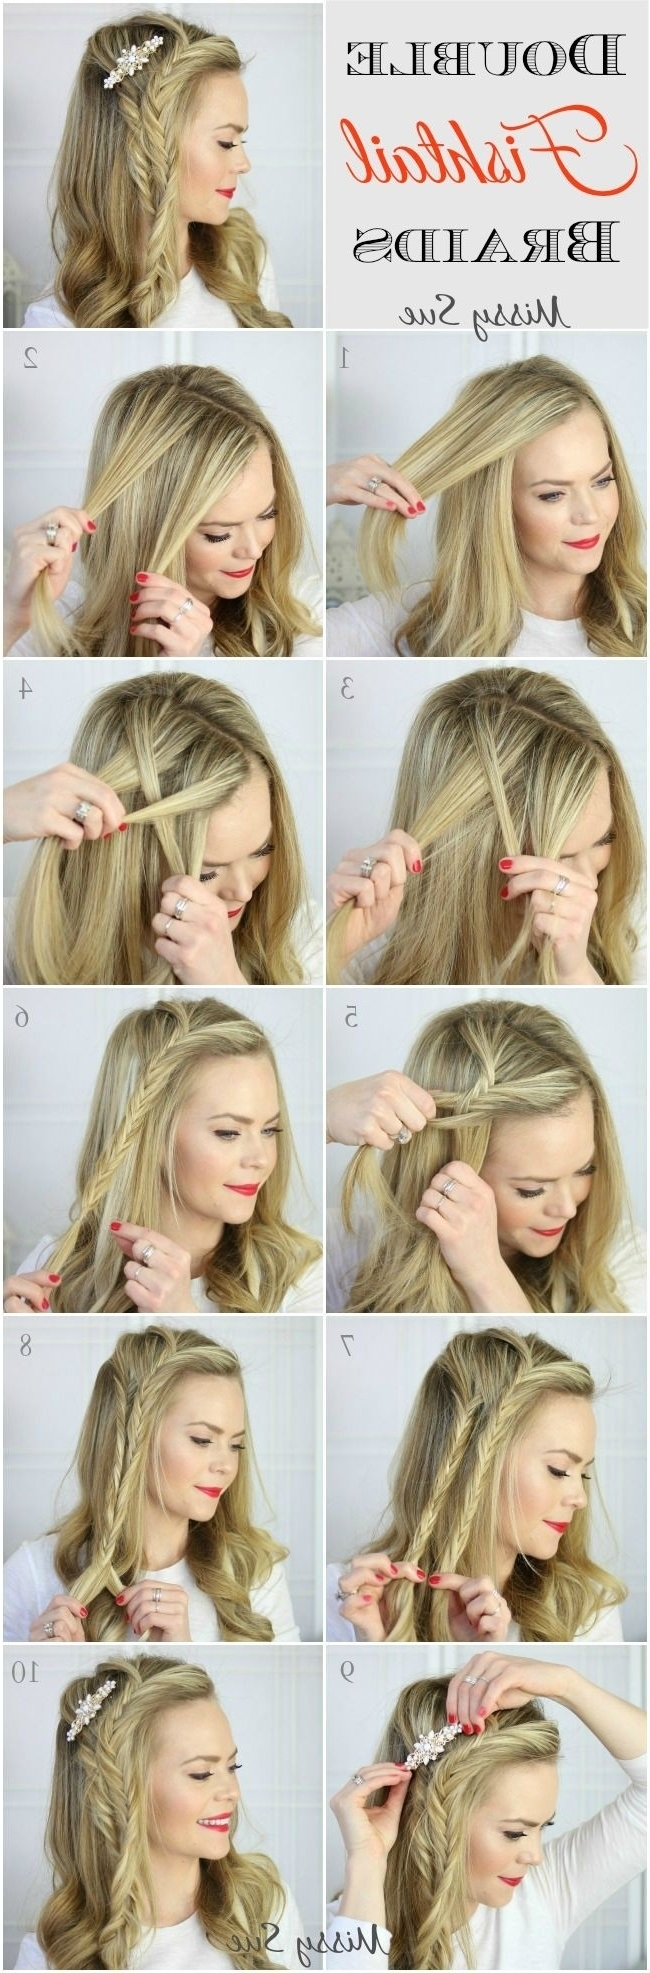 Famous Braided Everyday Hairstyles Intended For 10 French Braids Hairstyles Tutorials: Everyday Hair Styles (View 9 of 15)